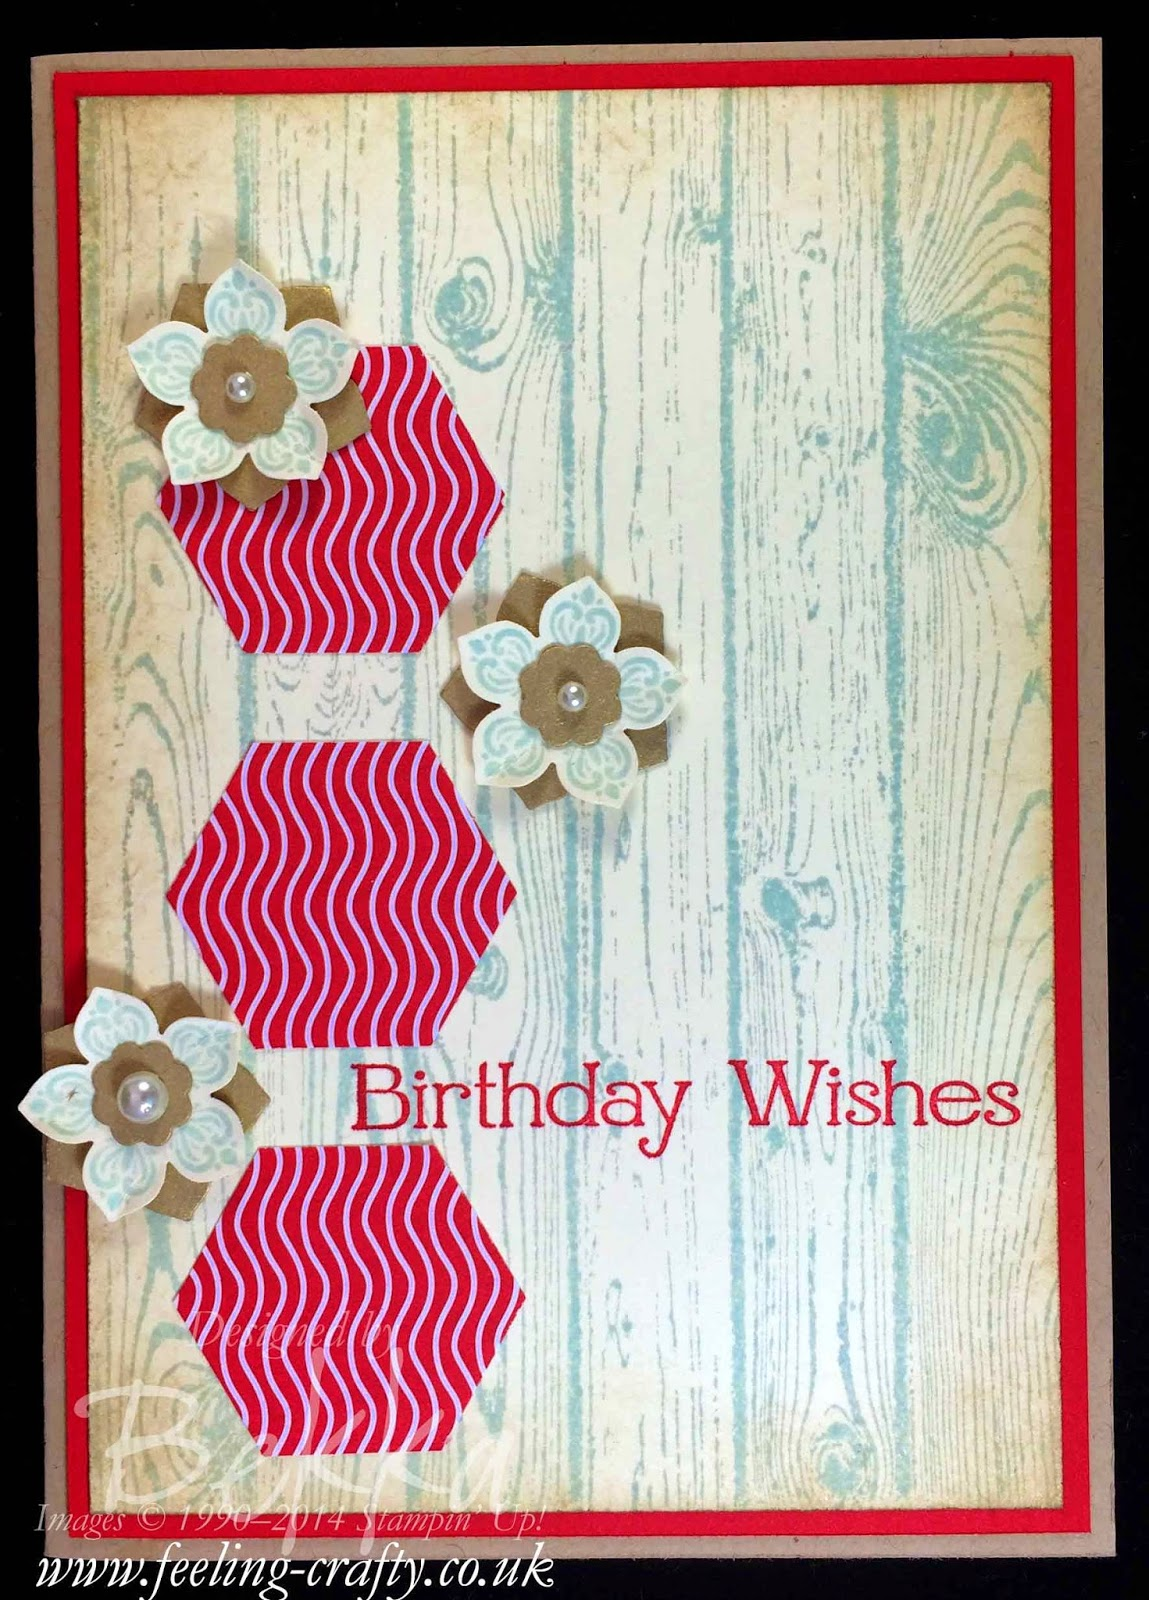 Petite Petals Birthday card by Stampin' Up! UK Independent Demonstrator Bekka - get your Stampin' Up! Supplies here